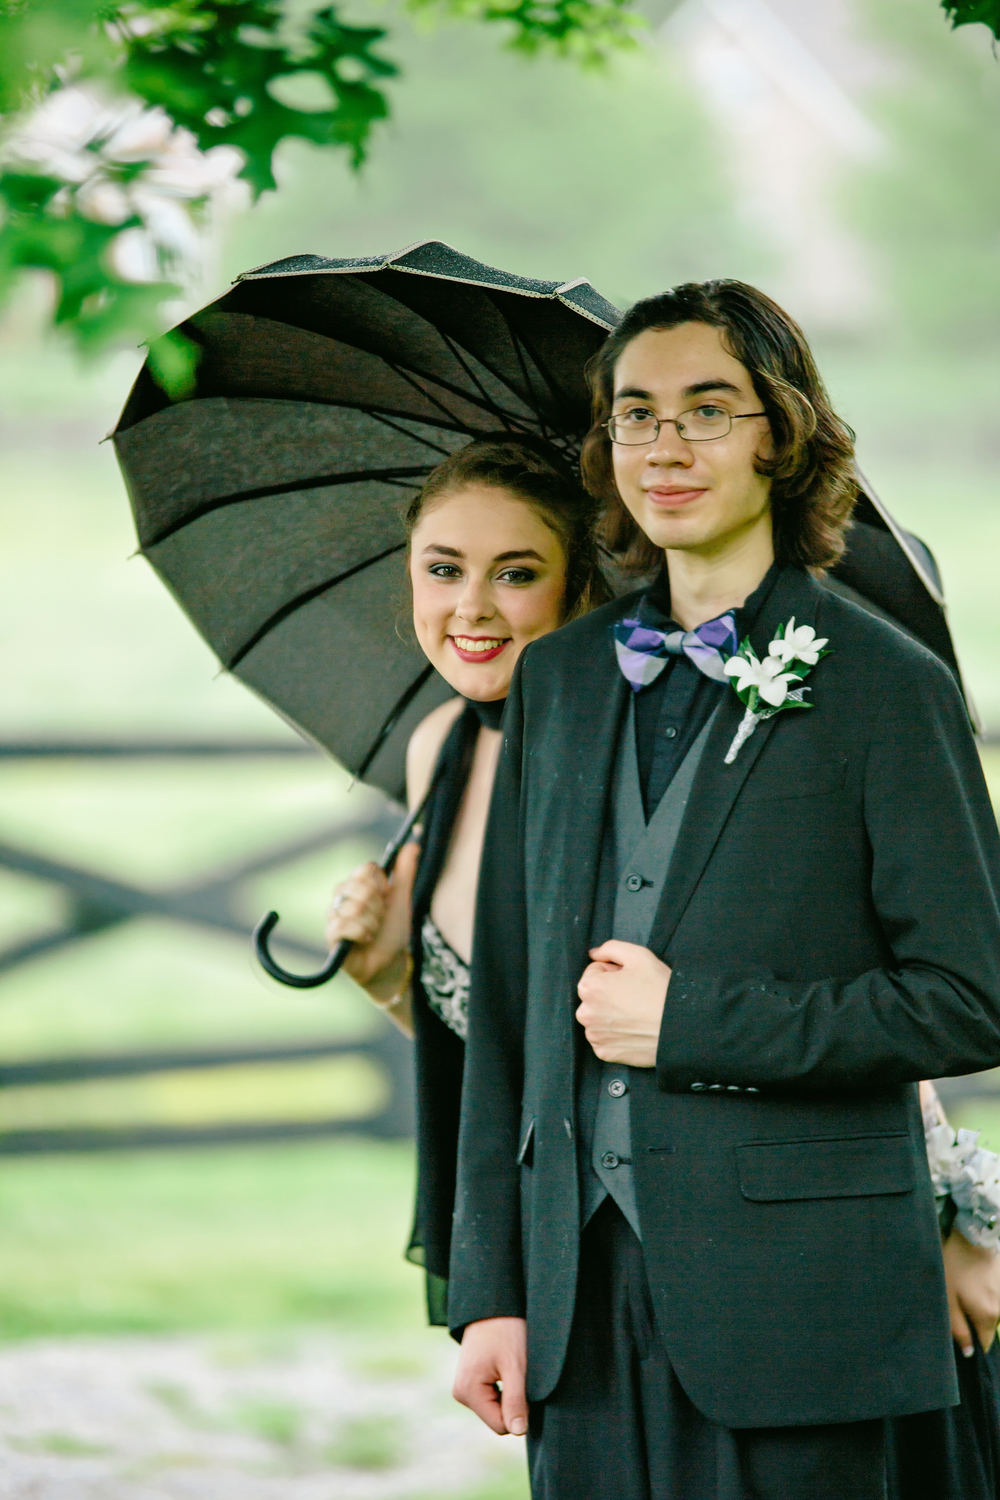 One of my favorite models, Kendall, and her date Tyler.